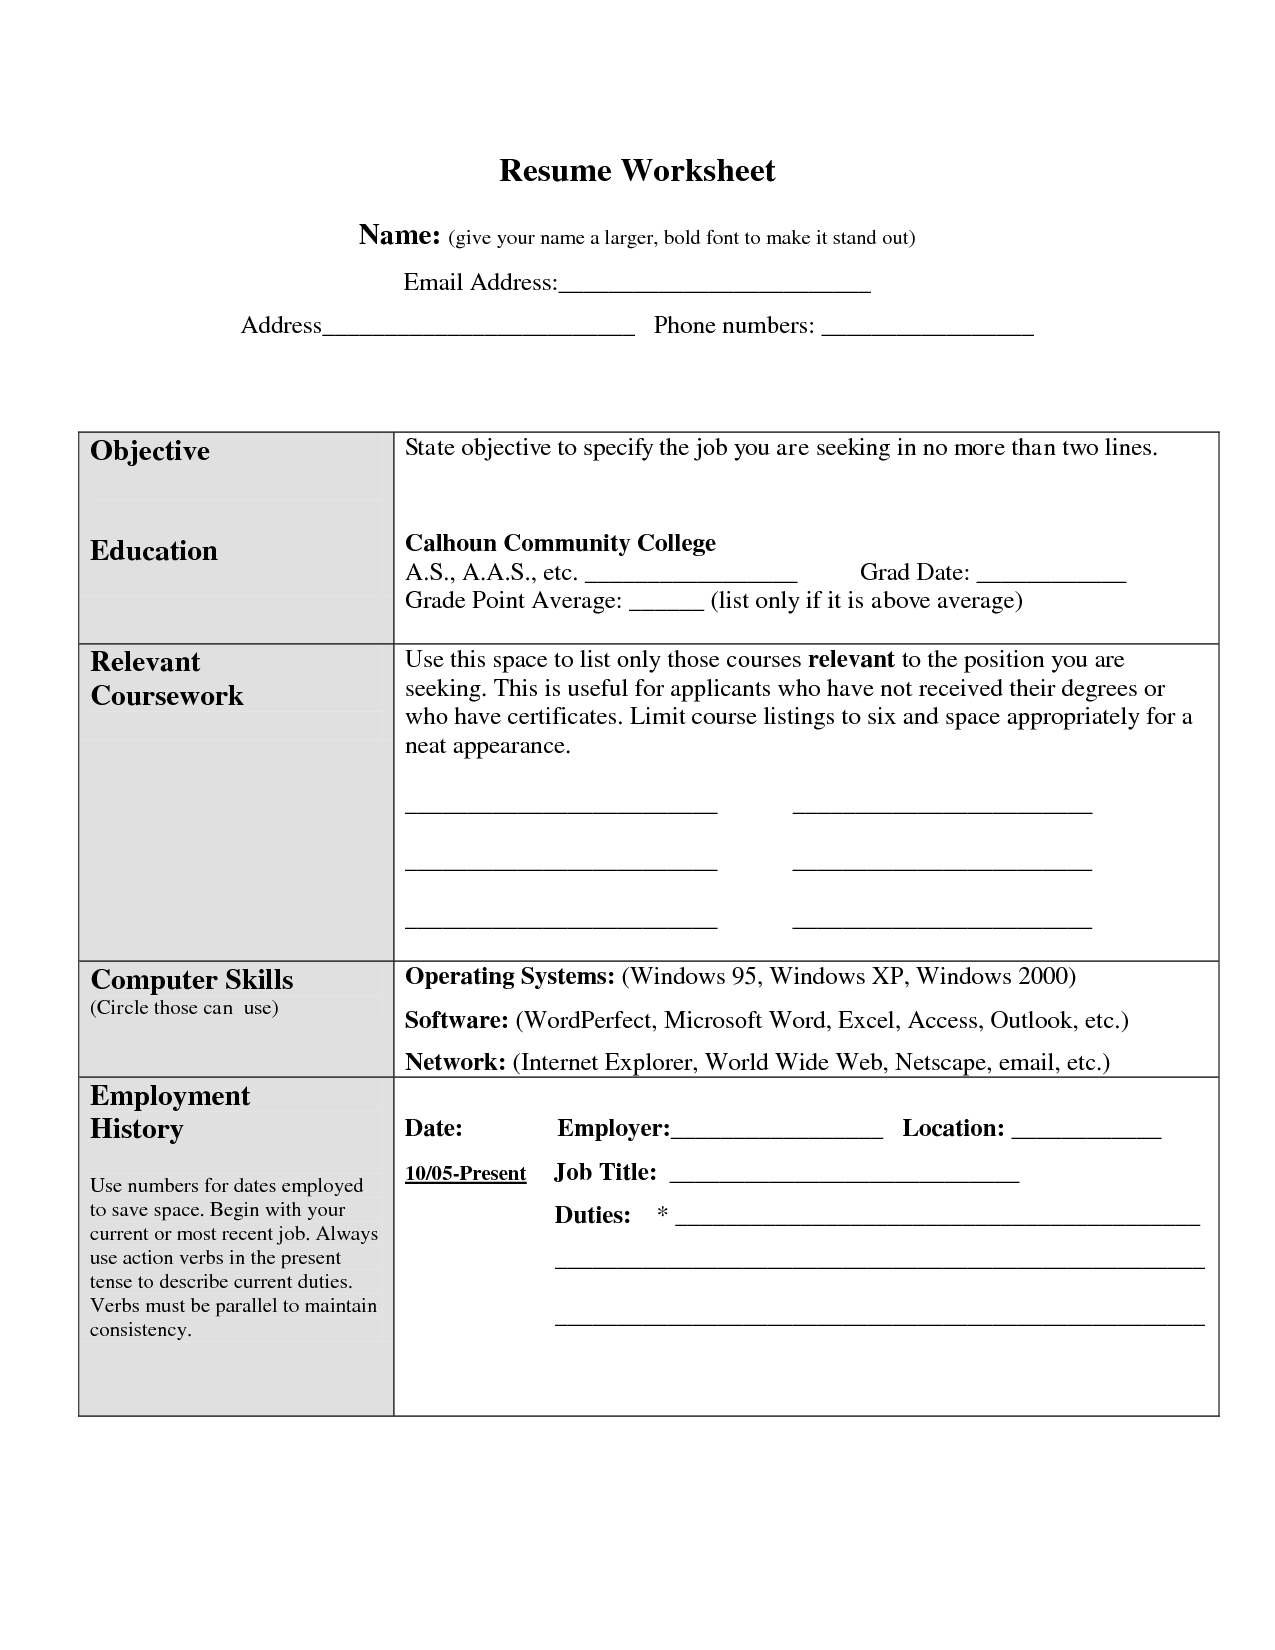 Worksheet For Making A Resume